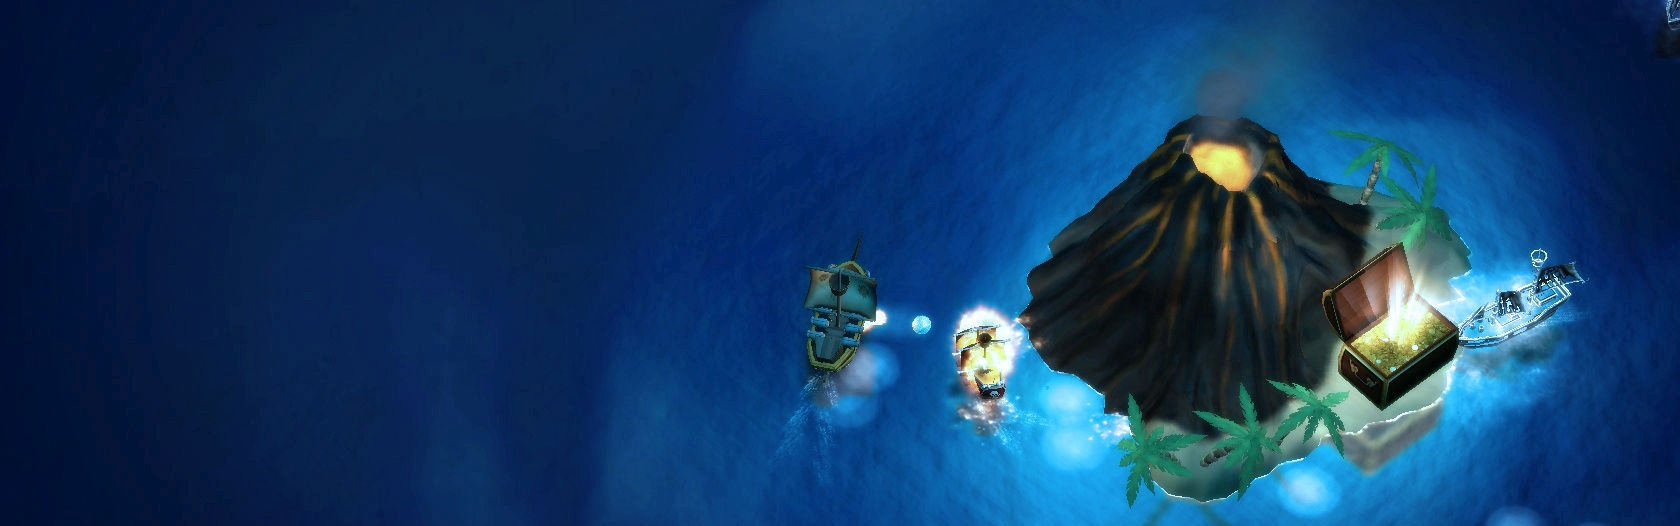 Woody Two-Legs: Attack of the Zombie Pirates Steam Key GLOBAL